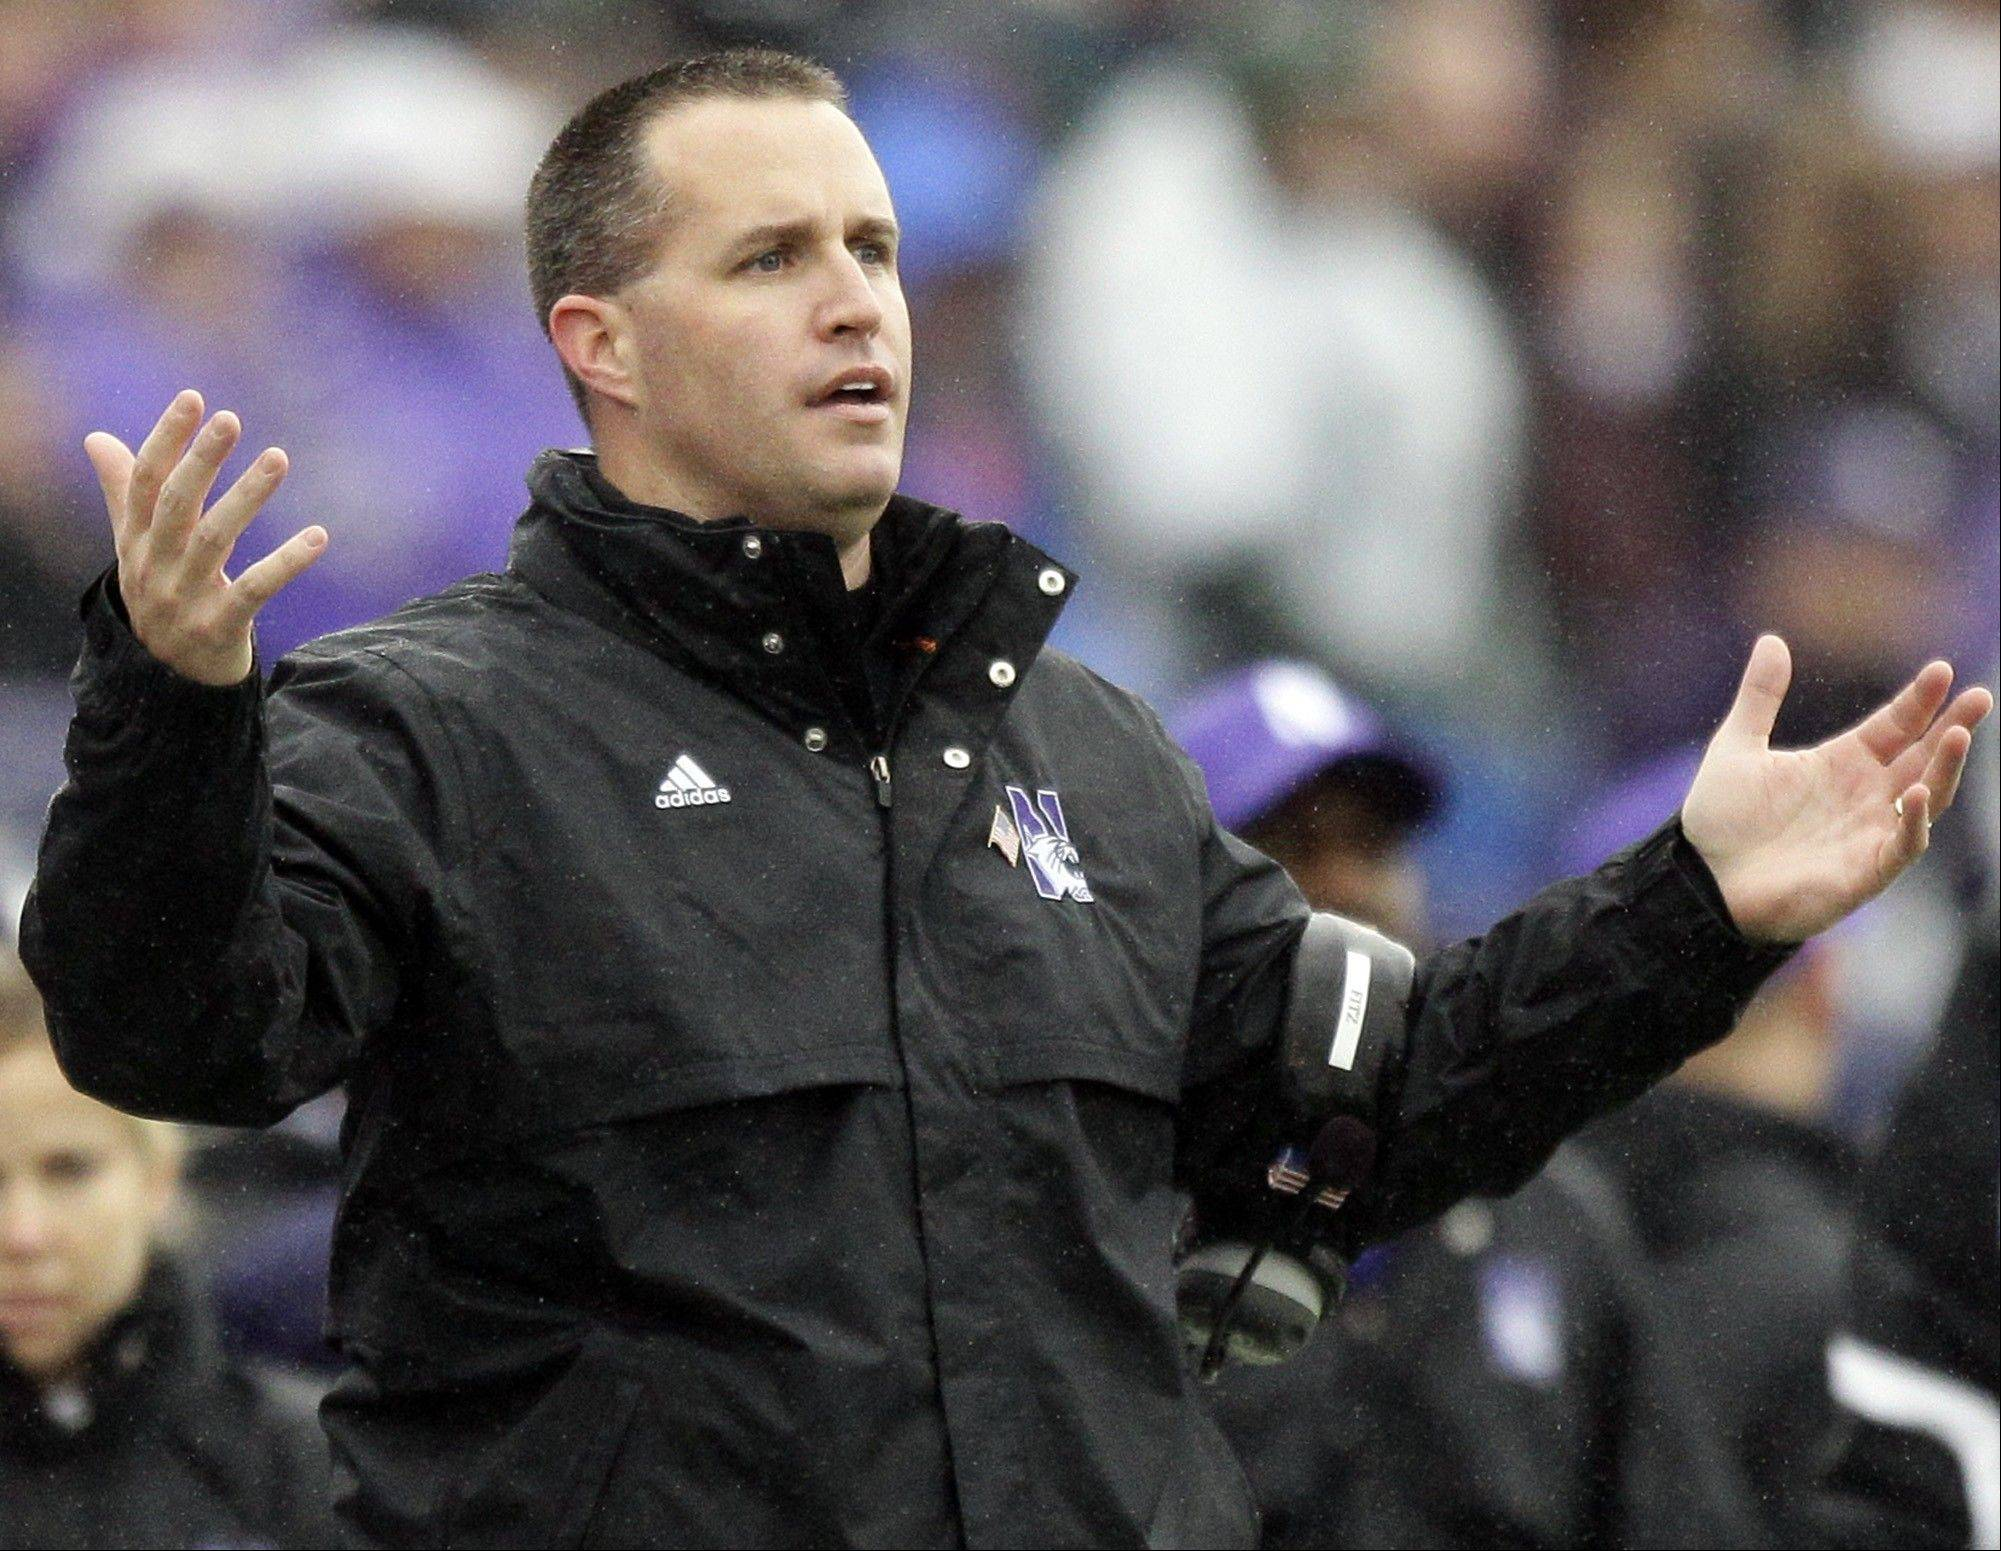 Northwestern head coach Pat Fitzgerald used a math lesson to describe his team's situation in 2011.